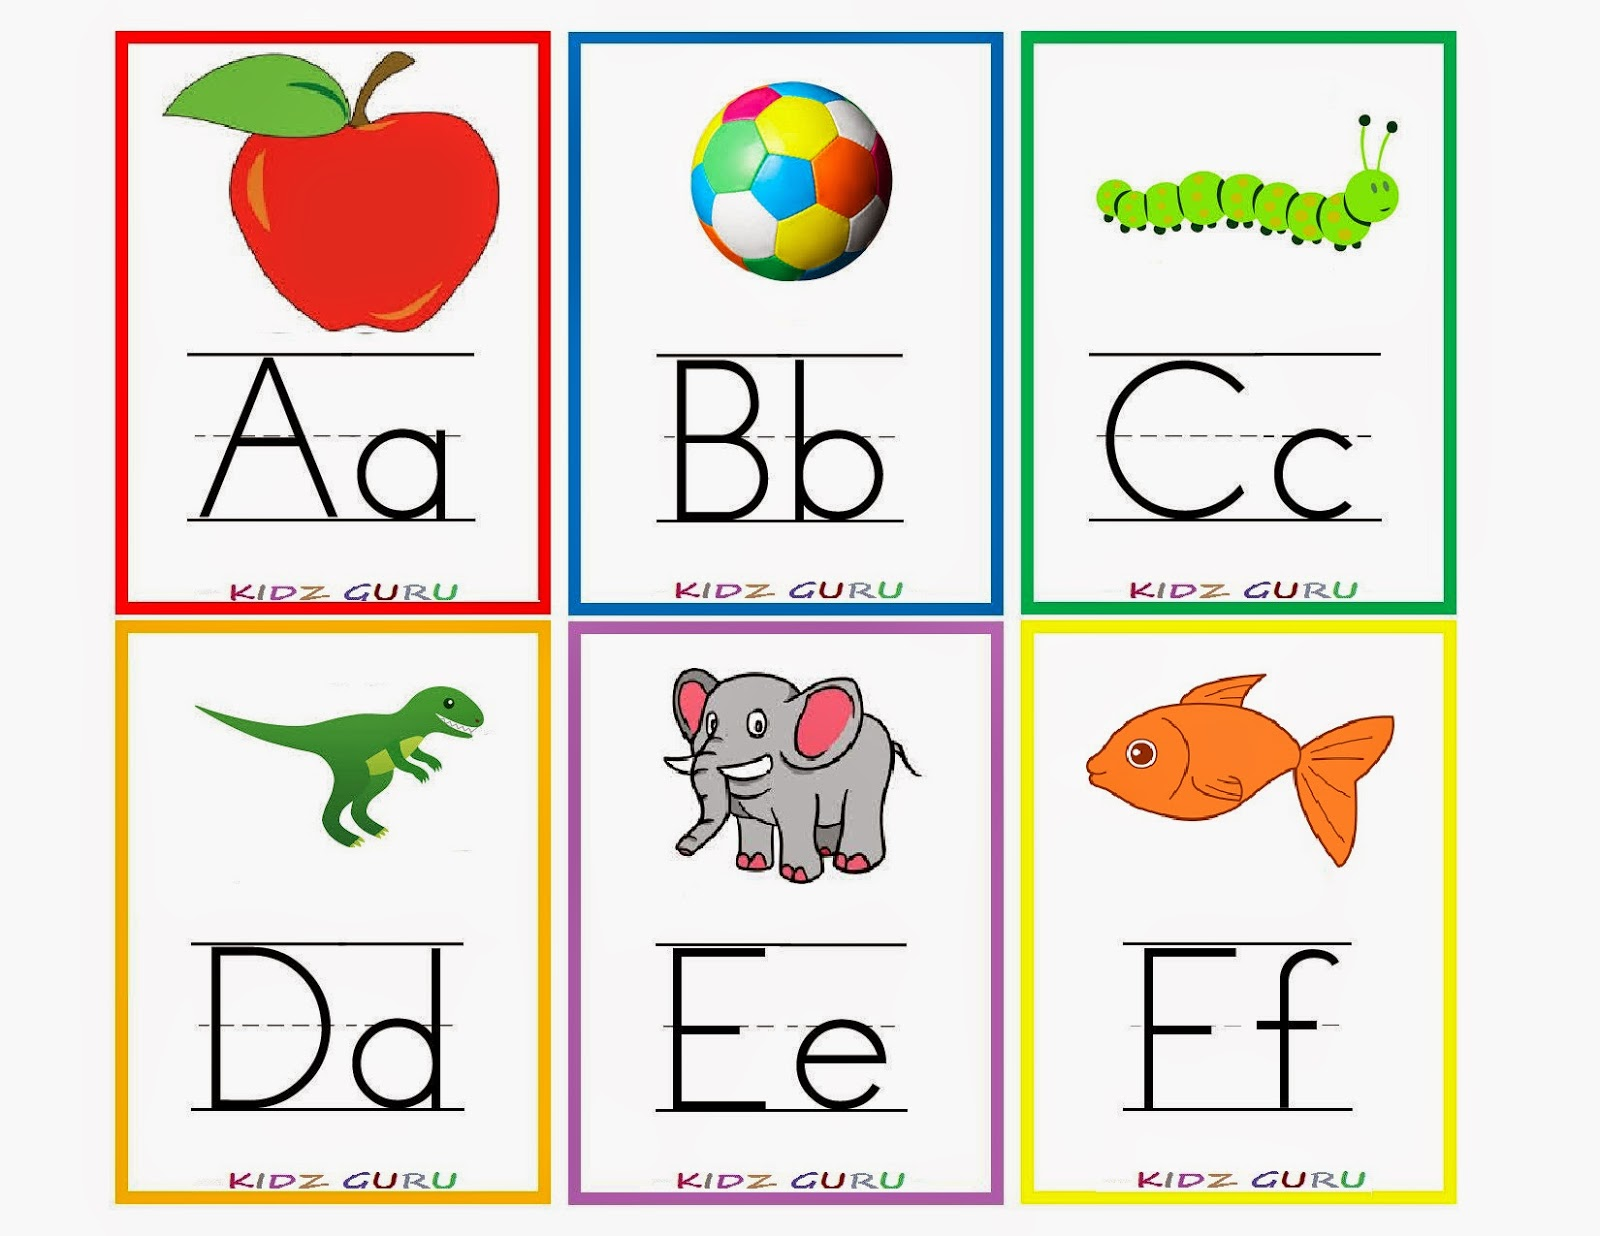 Smart image intended for printable abc flash cards